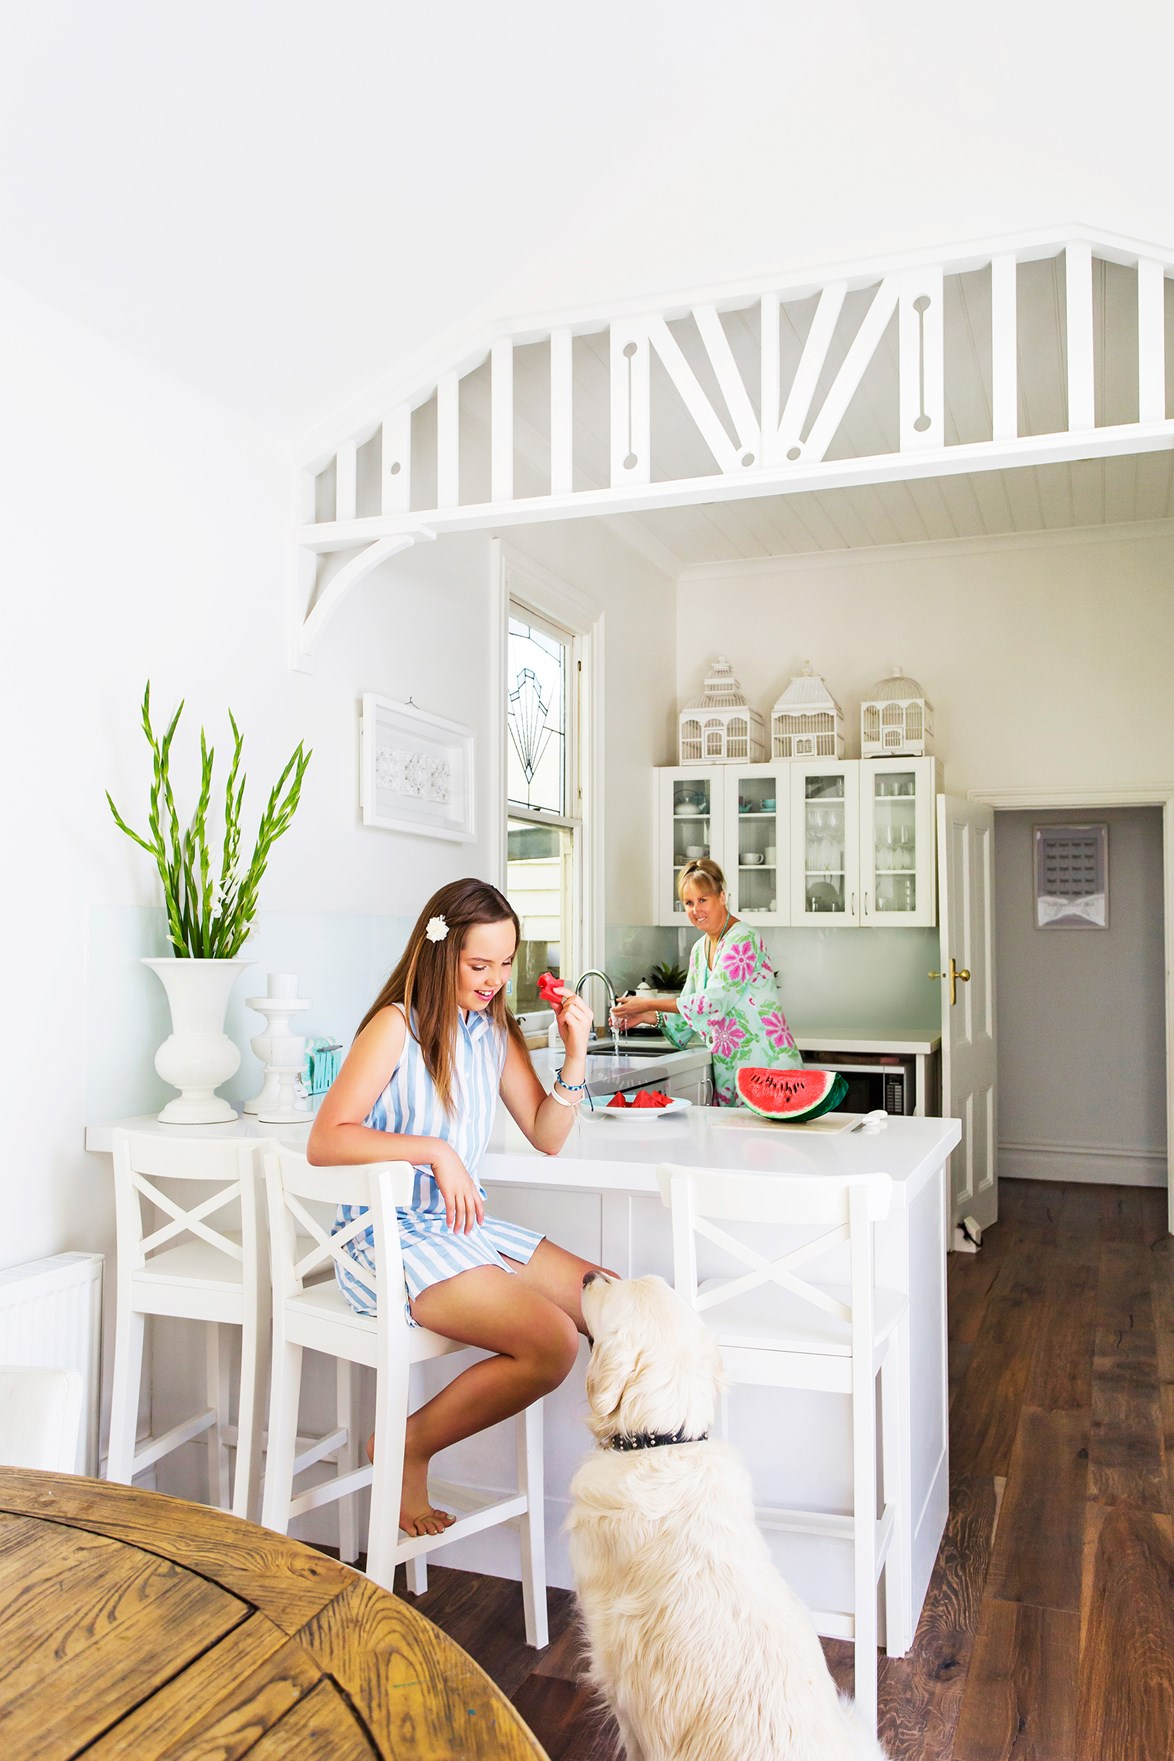 A crisp white palette combined with classic panelling and fretwork gives this cottage kitchen a Hamptons vibe. Photo: Katherine Jamison / *homes+*